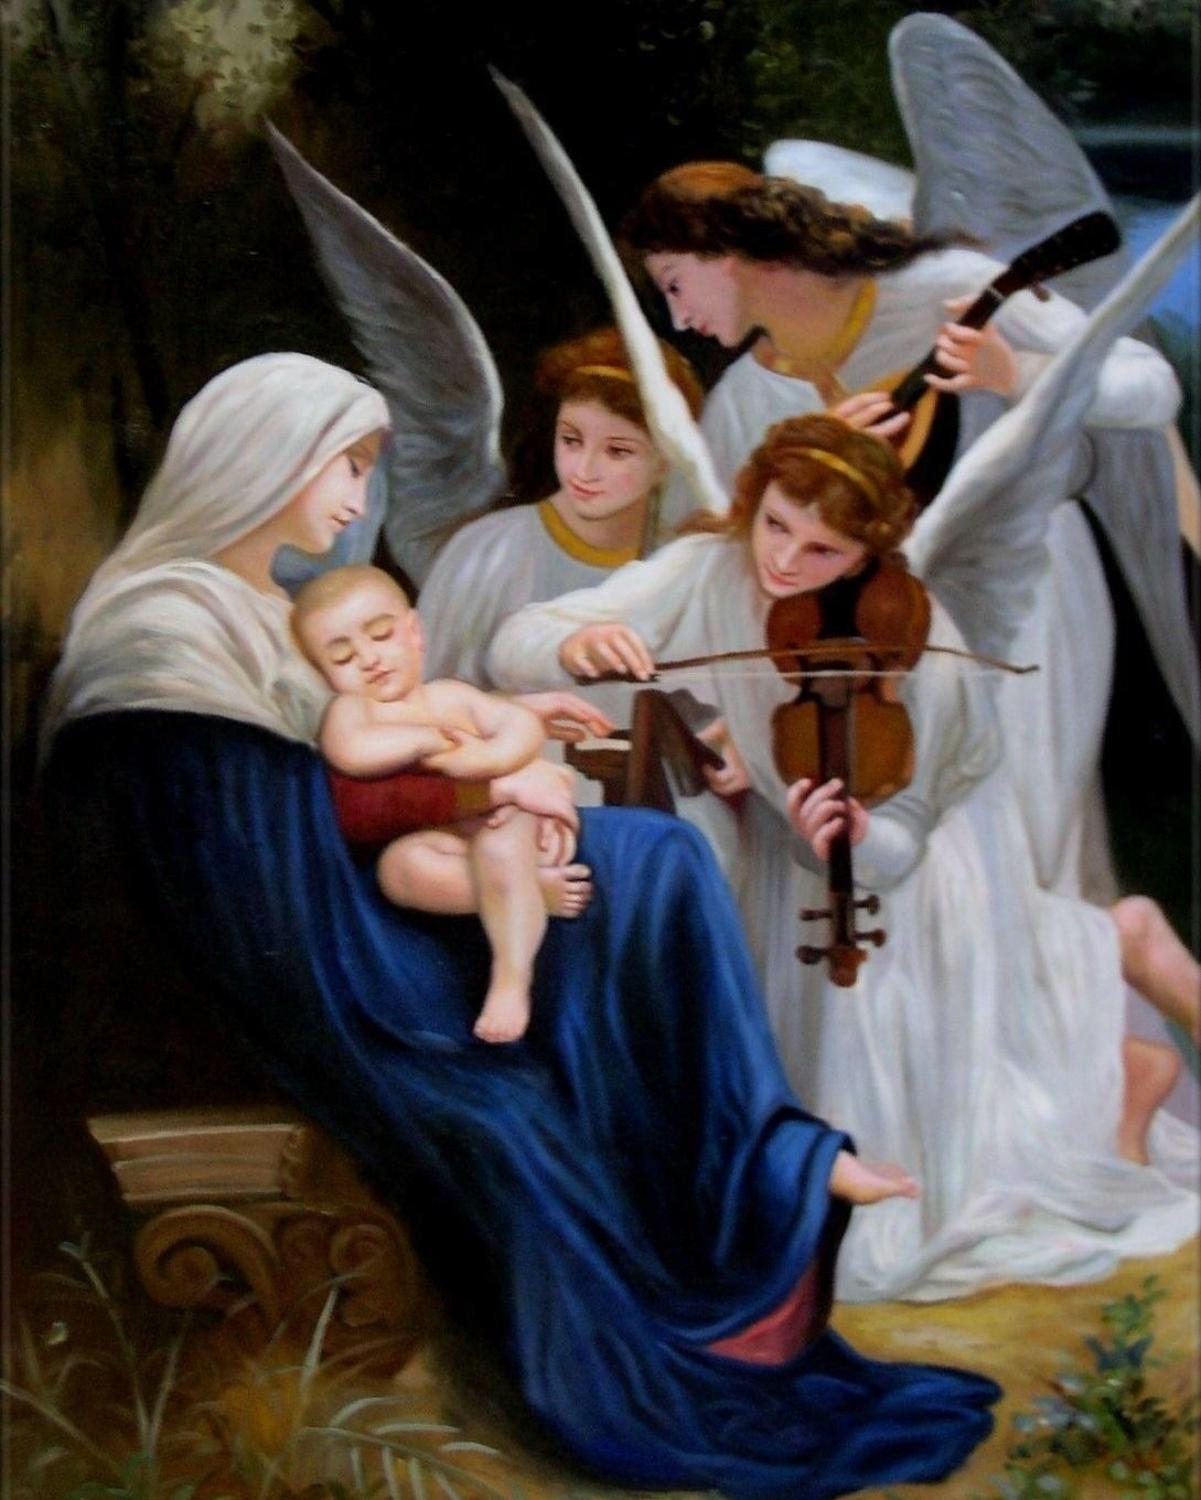 Baby Jesus - Paint By Numbers Kits